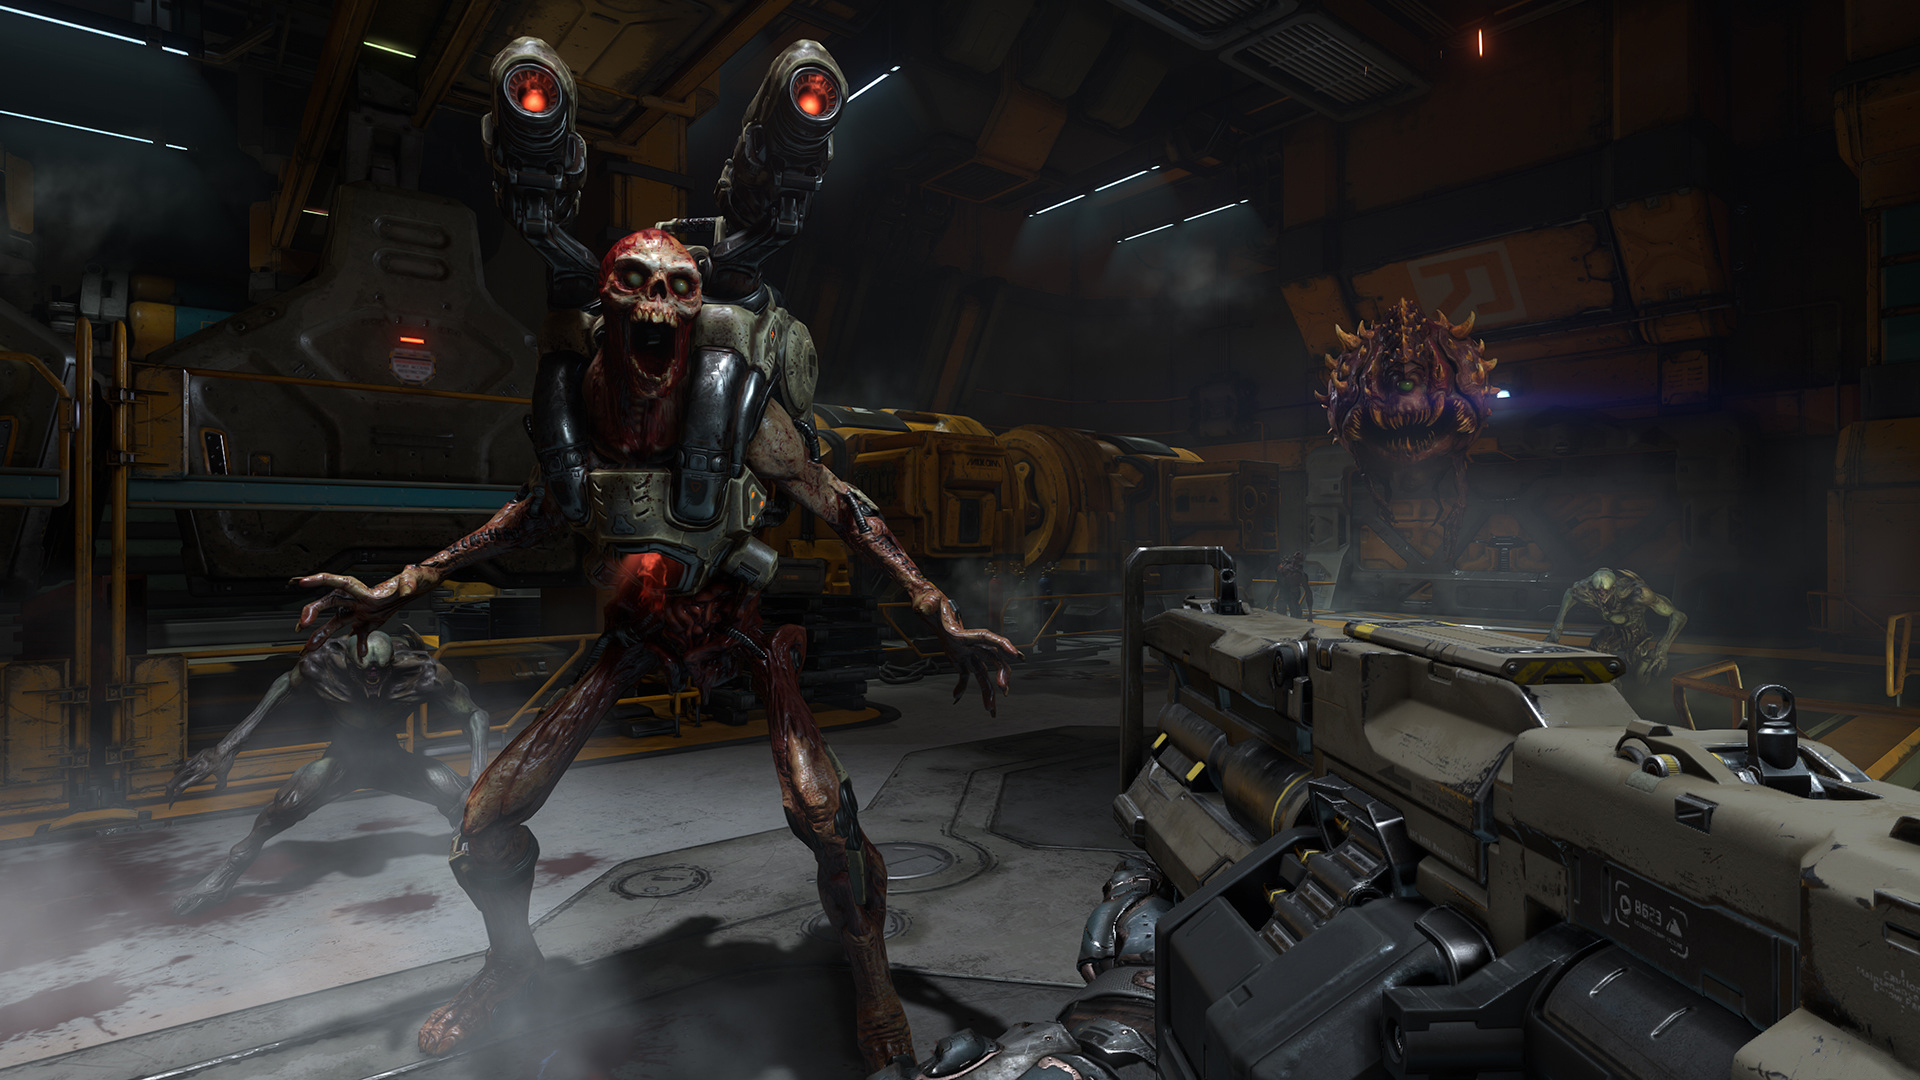 doom-quakecon-2015-1-pcgh